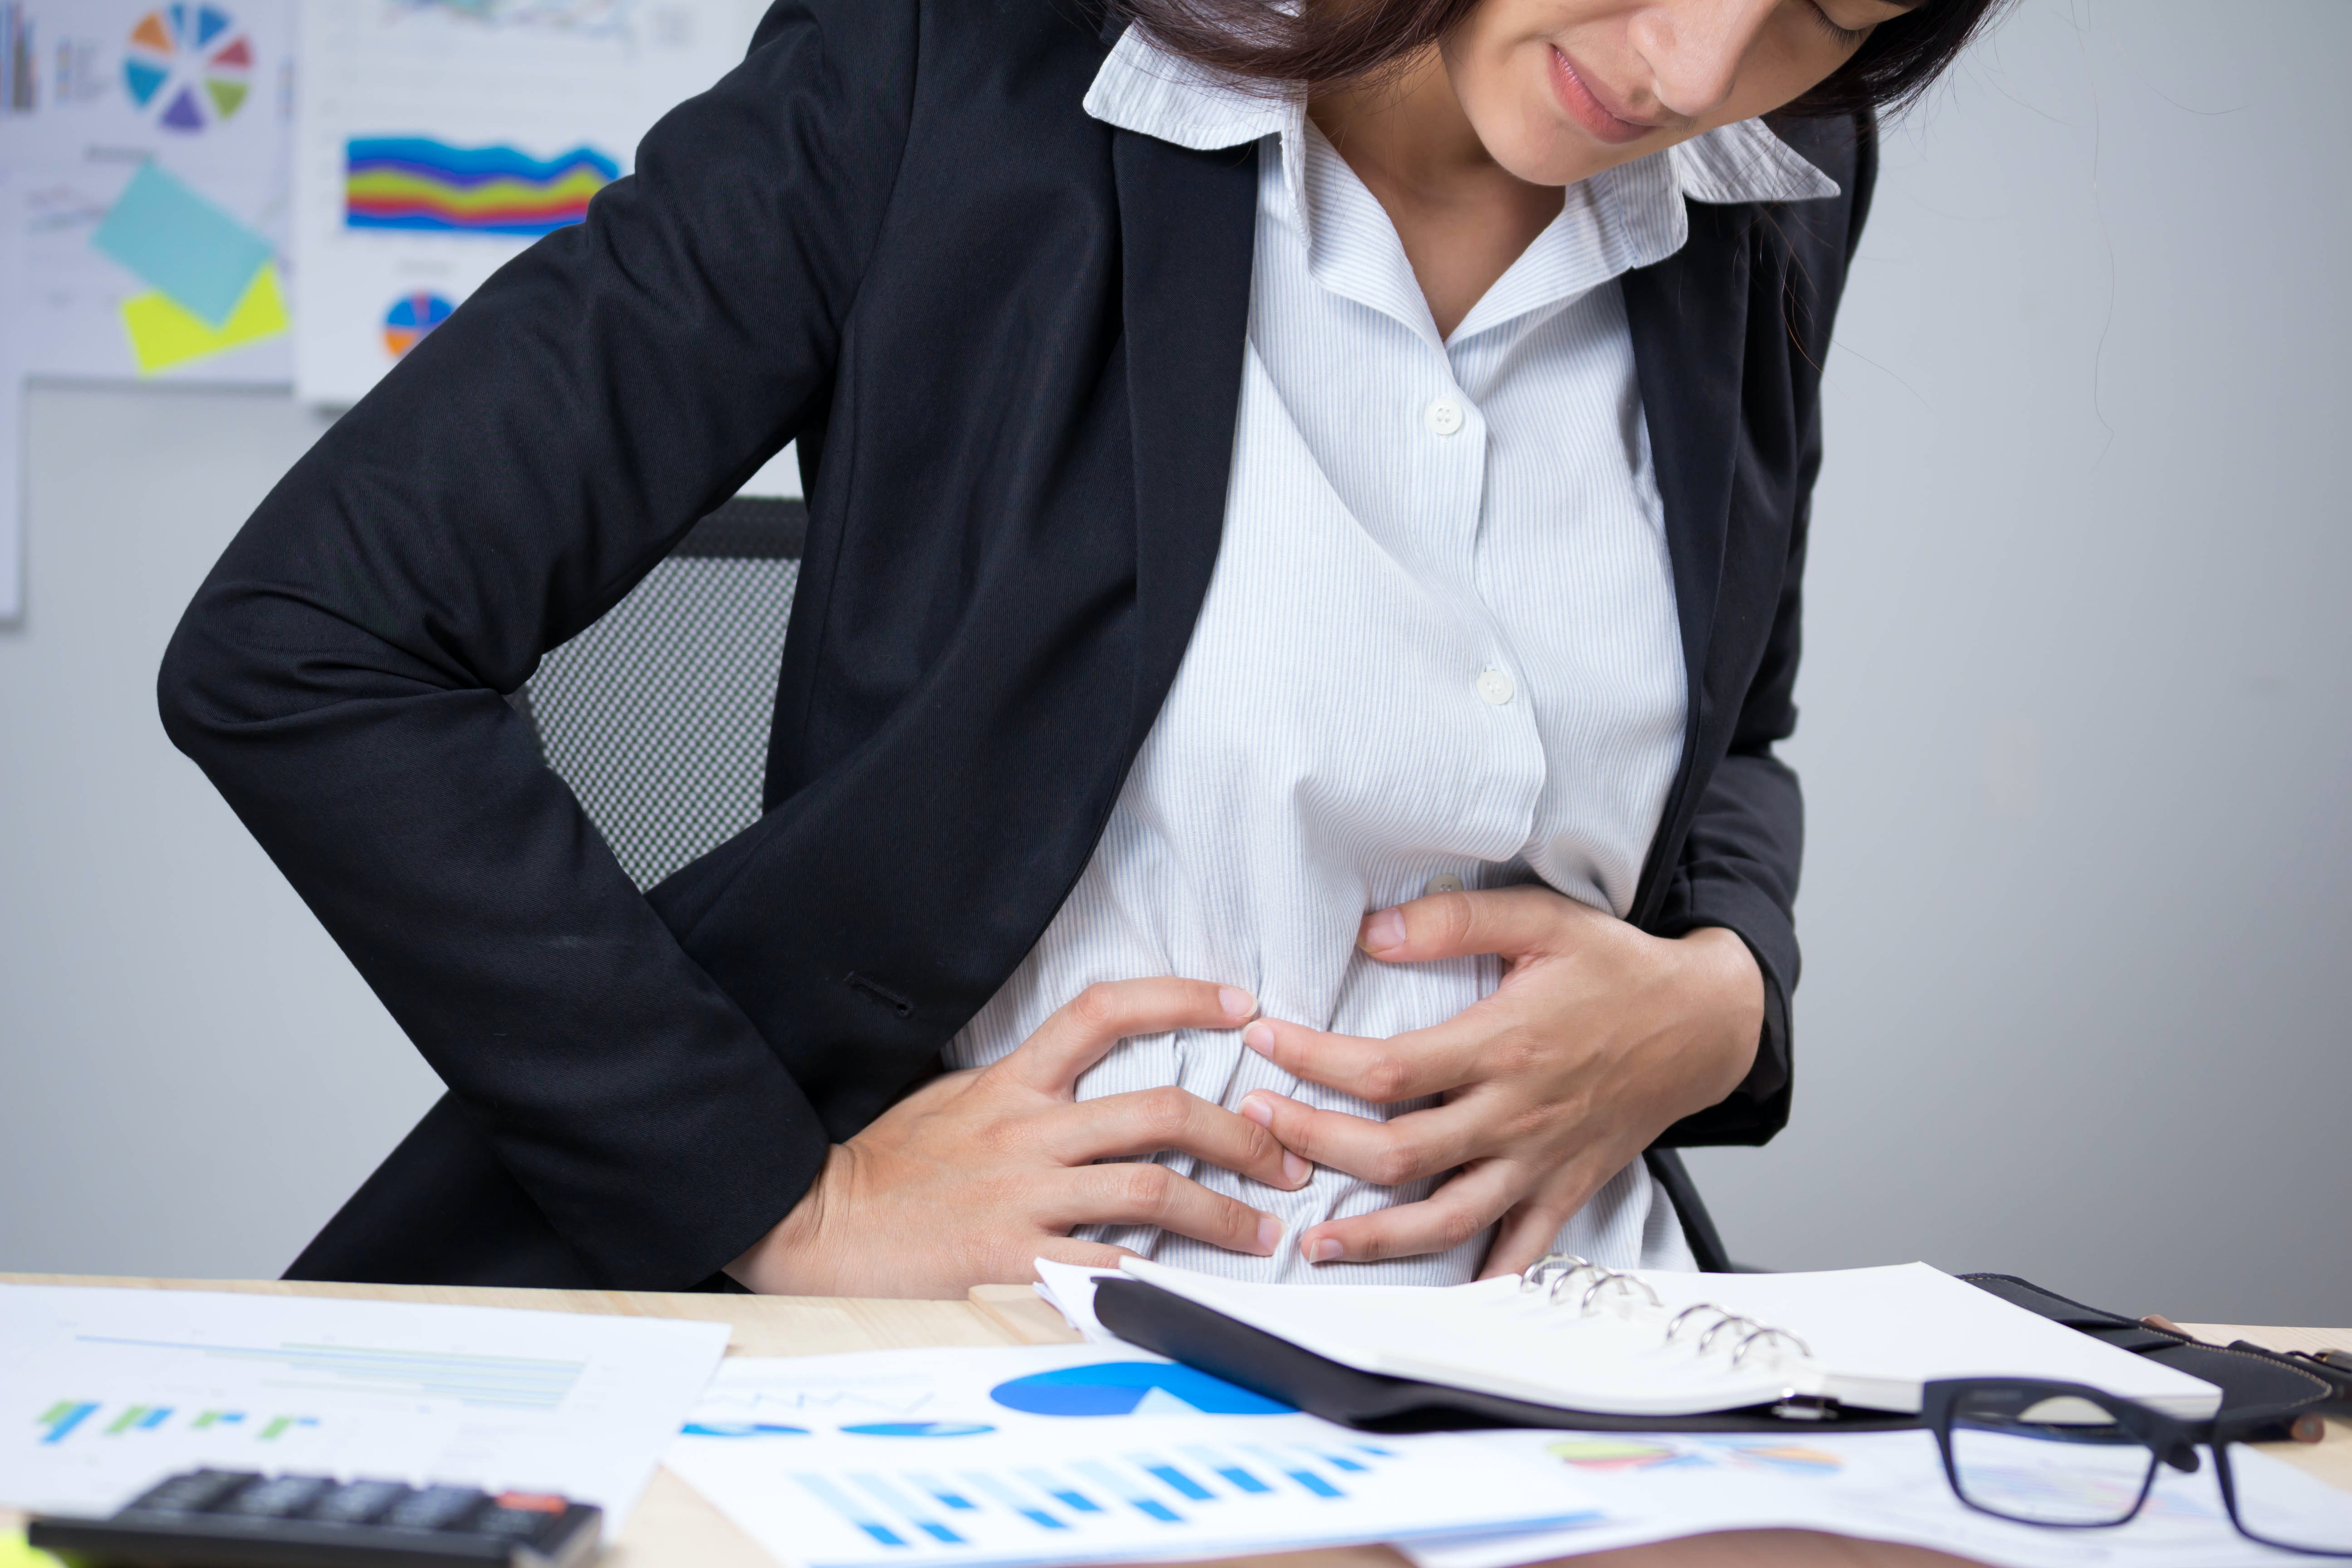 An image depicting a person suffering from Irritable Bowel Syndrome (IBS) symptoms